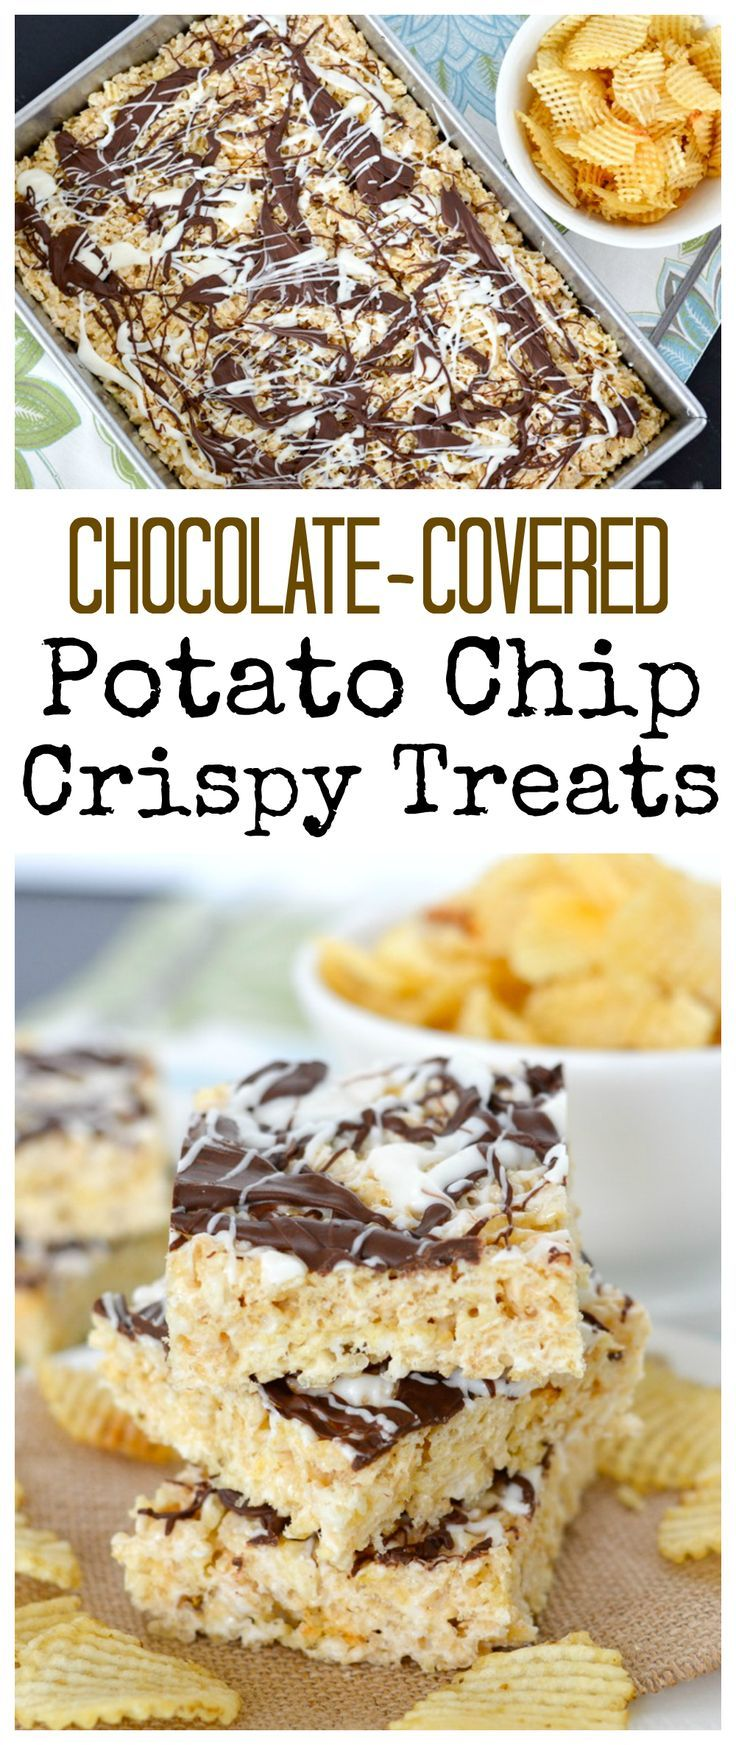 These Chocolate-Covered Potato Chip Crispy Treats are the perfect combo of sweet and salty!